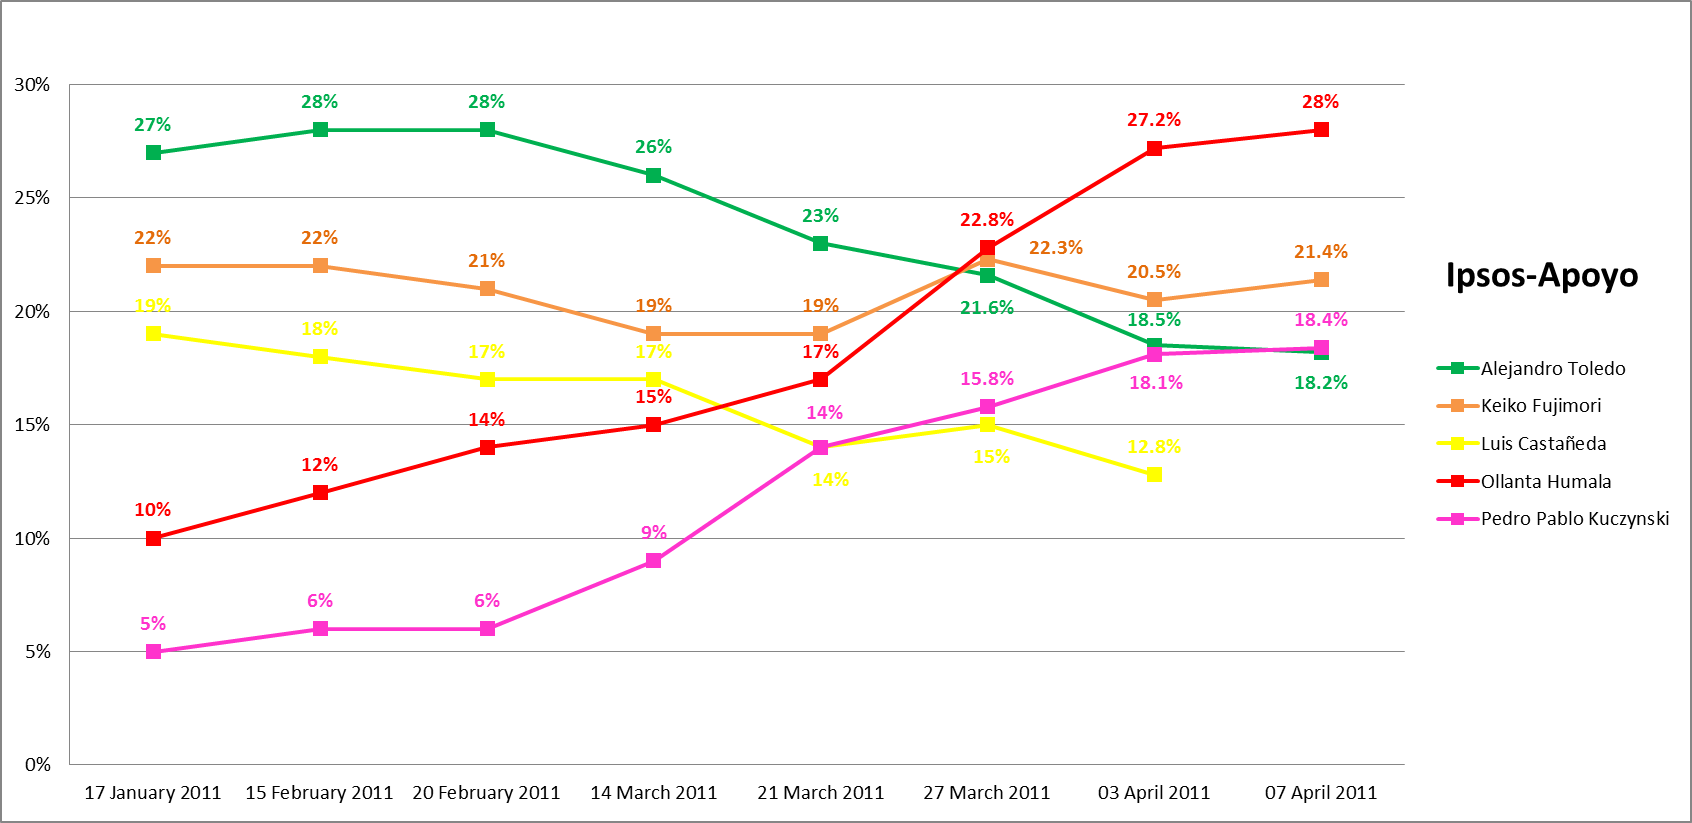 Graph of Peruvian presidential election polling